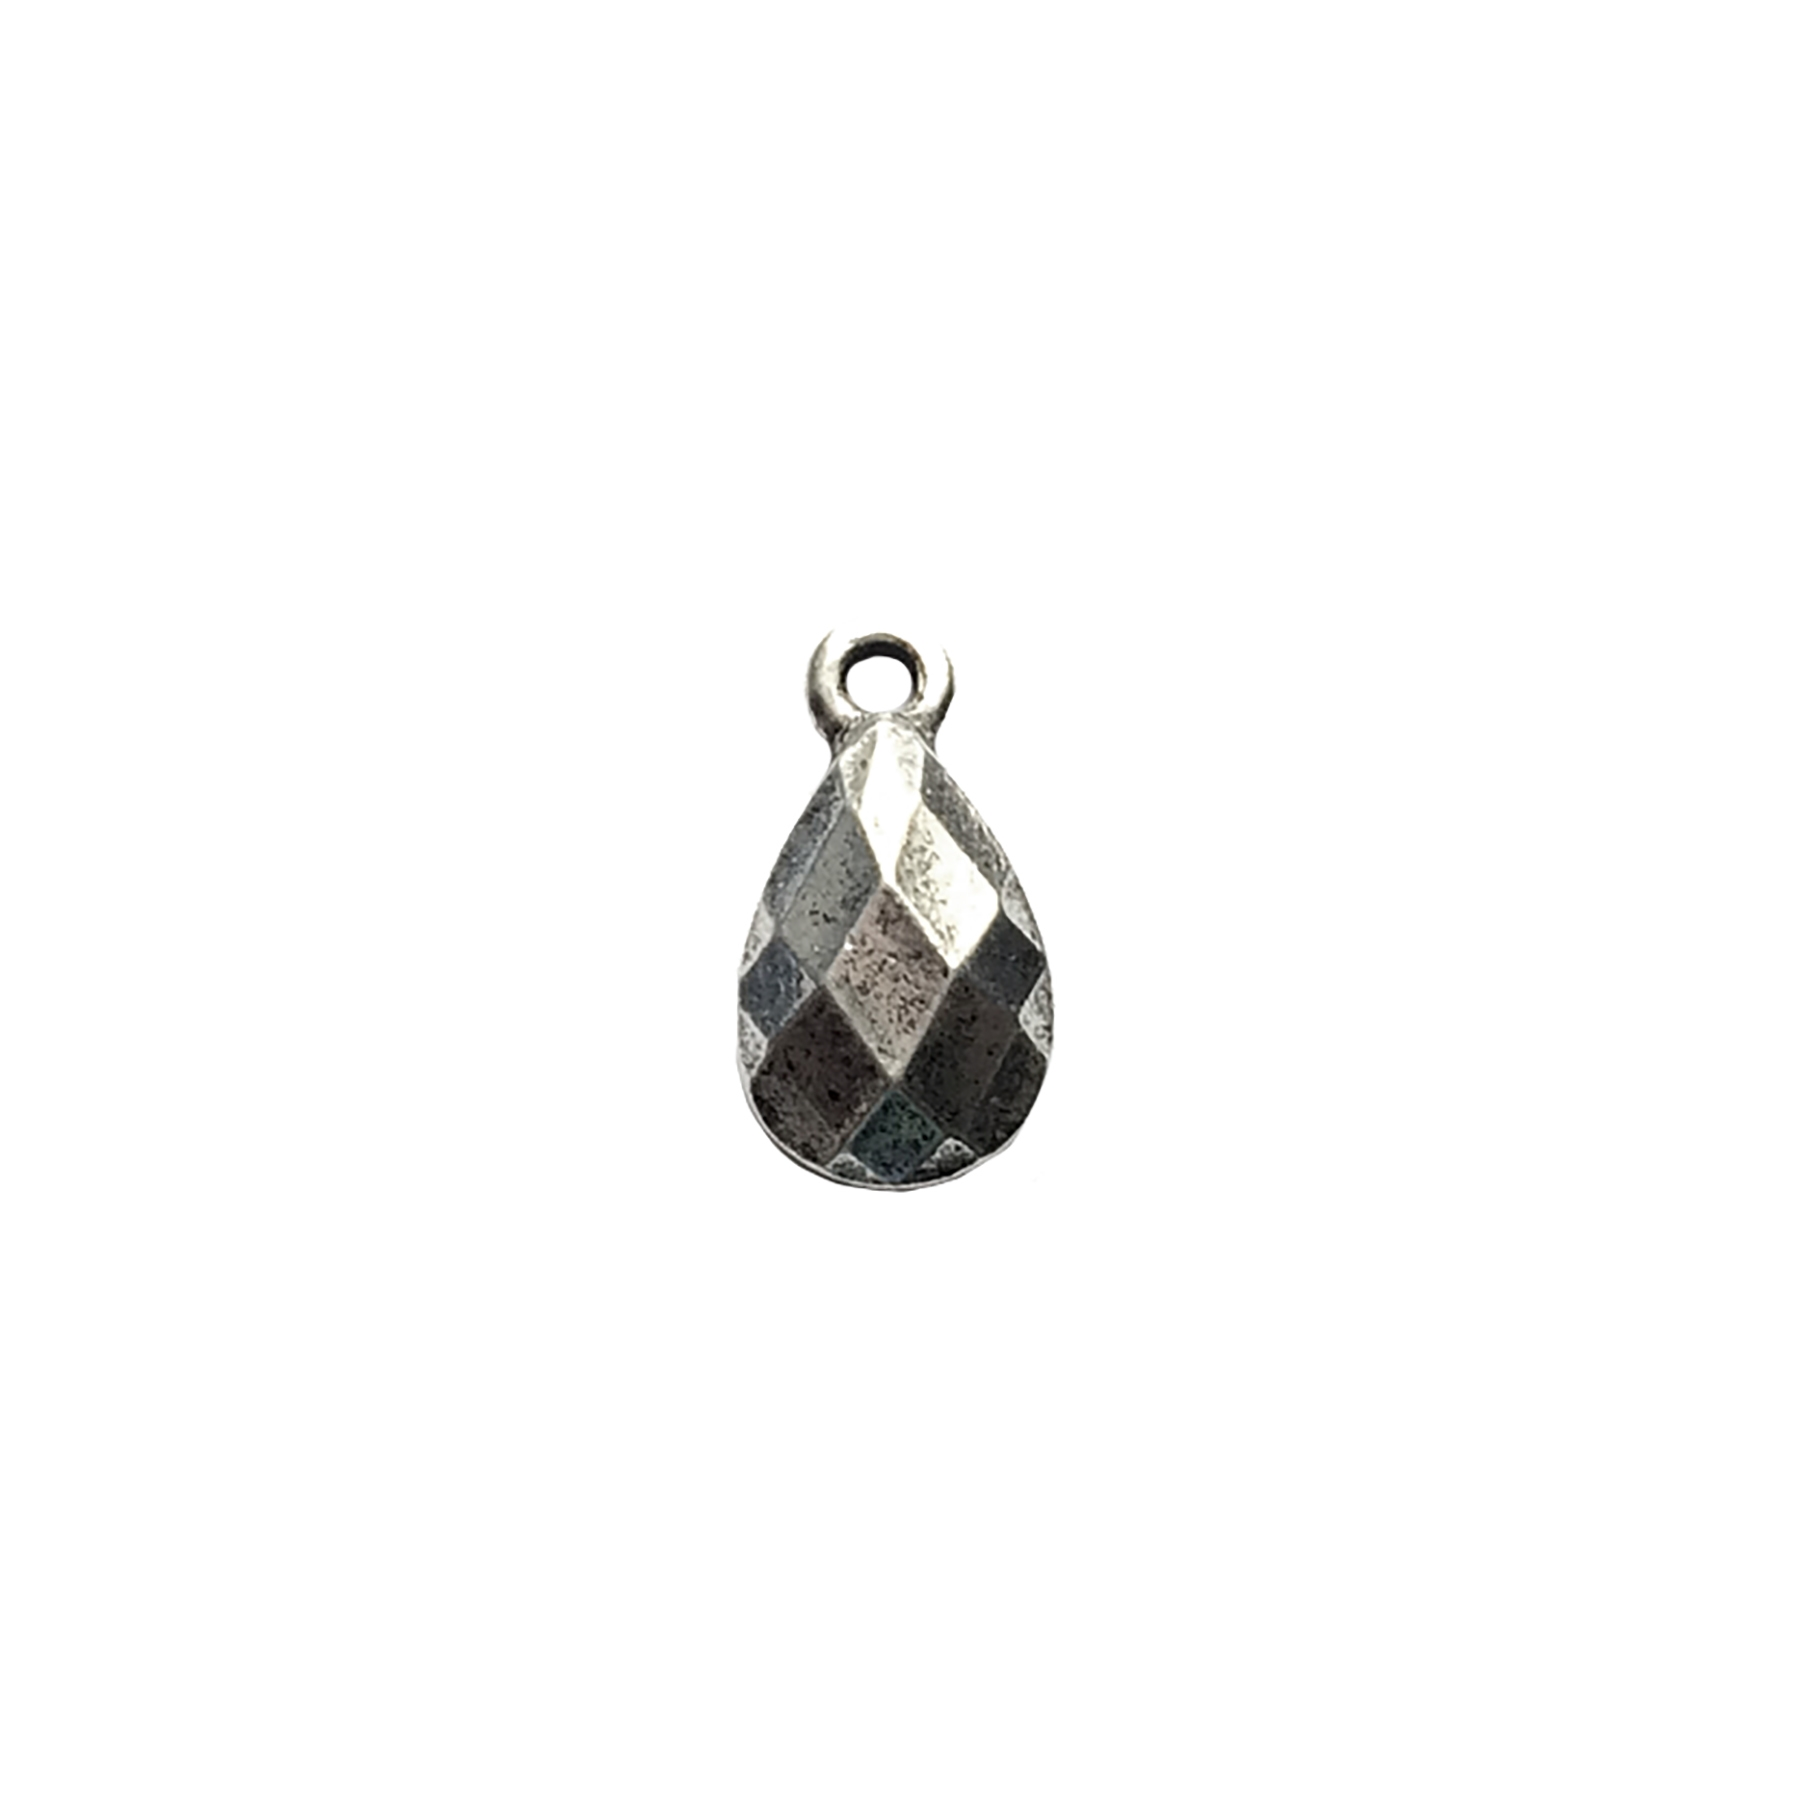 Victorian ear drop, jewelry charm, 02803, lead free pewter, B'sue by 1928, antique silver, vintage jewelry parts, pewter jewelry parts, nickel free finish,us made, 1928 Company, designer jewelry, B'sue Boutiques, old silver pewter